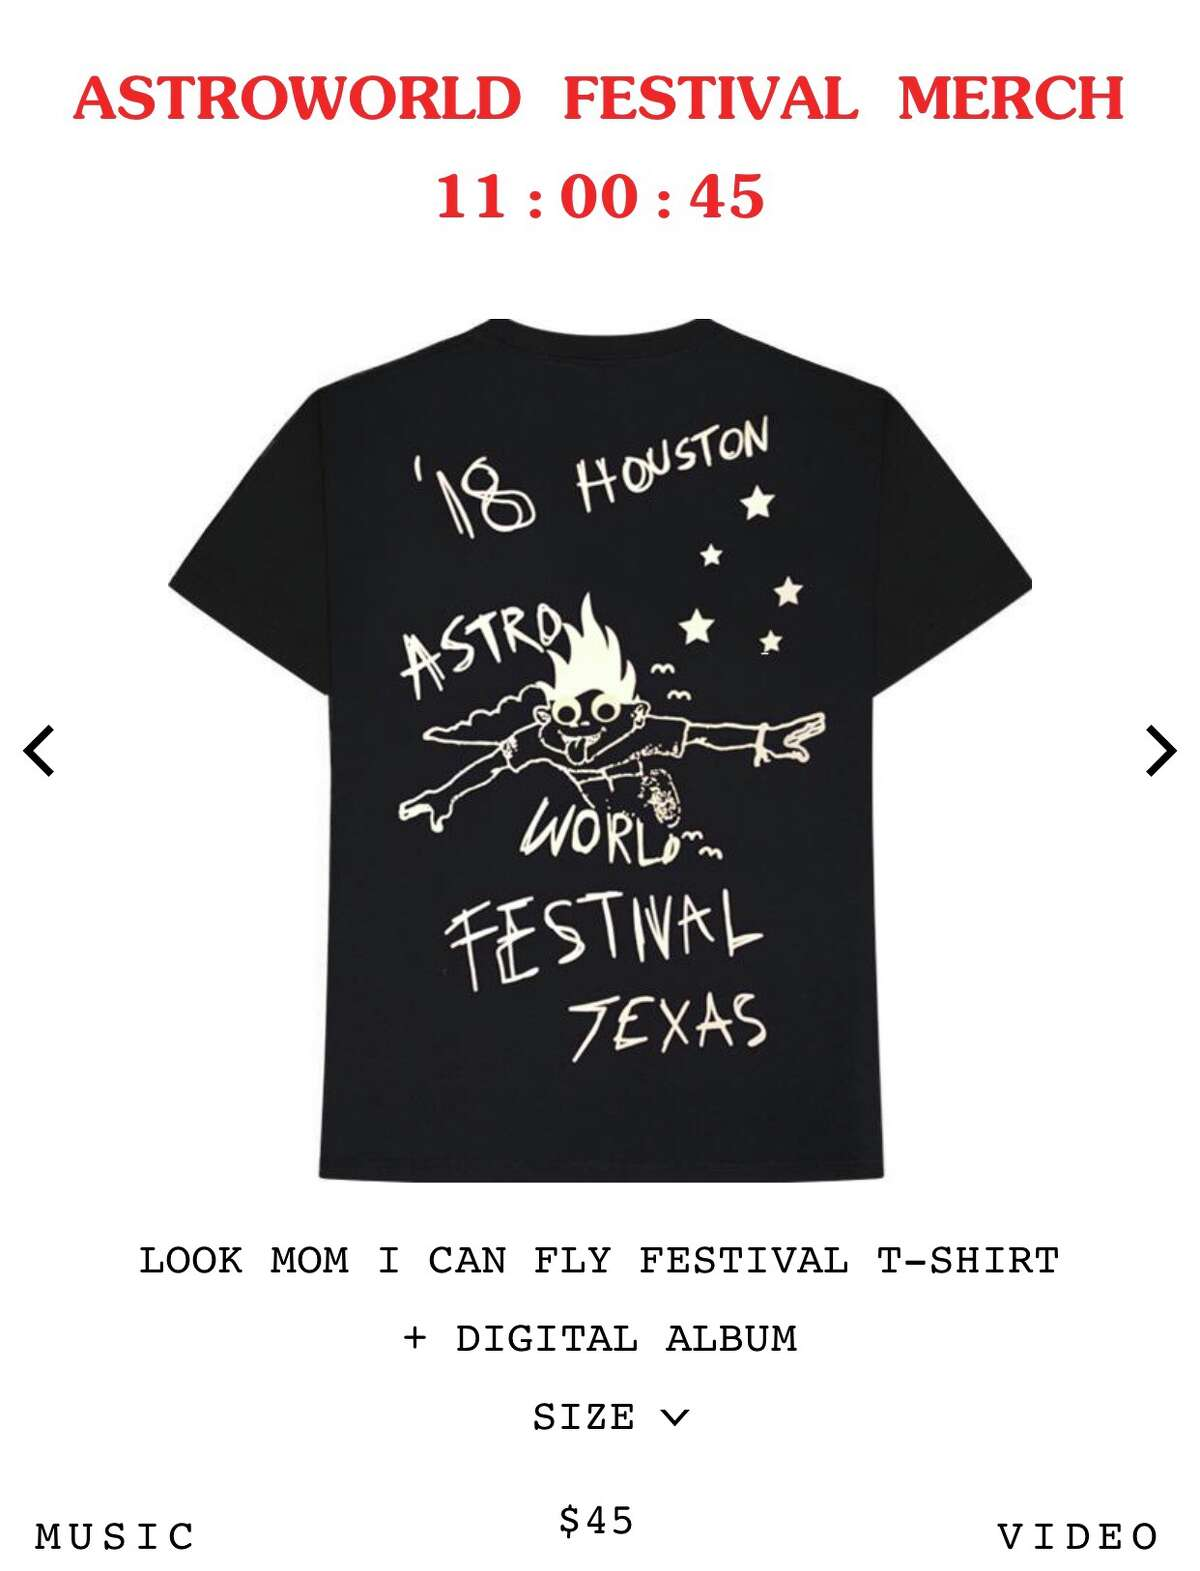 Travis Scott is selling limited quantities of his Astroworld Fest merch on his site.